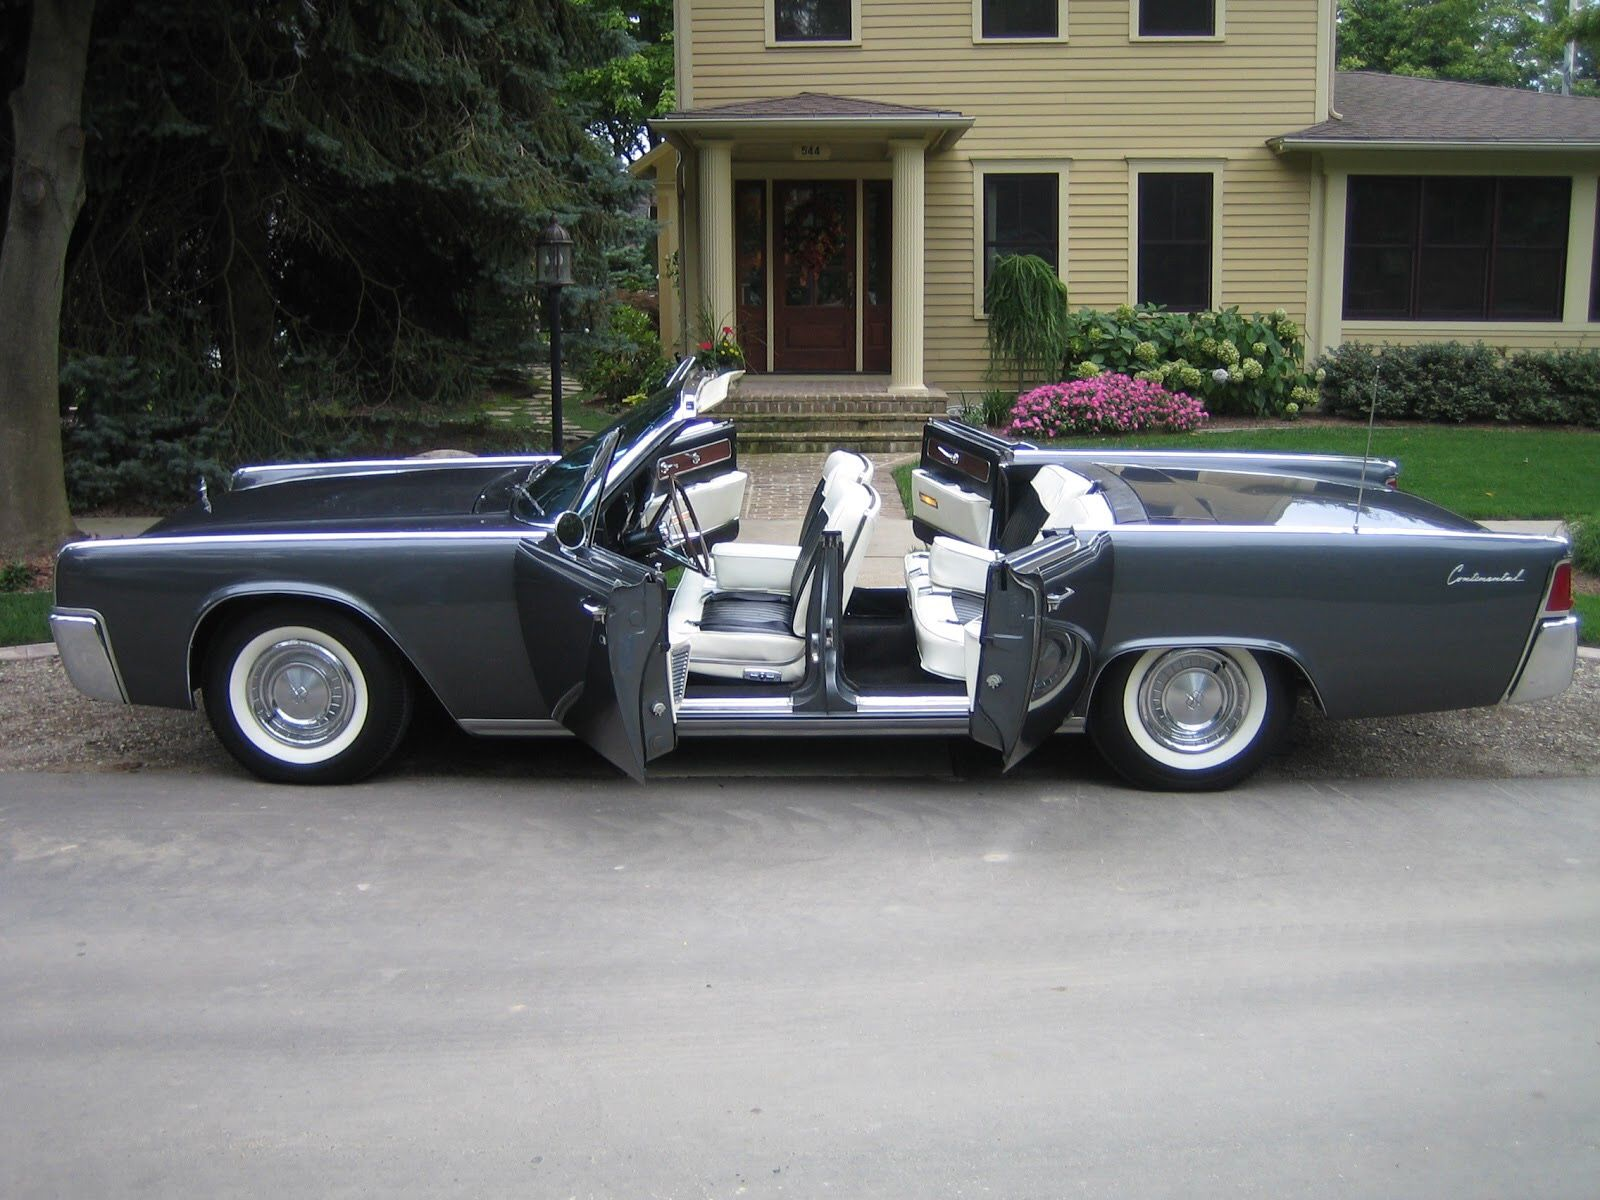 1961 lincoln continental convertible cars american icons pinterest convertible cars and. Black Bedroom Furniture Sets. Home Design Ideas